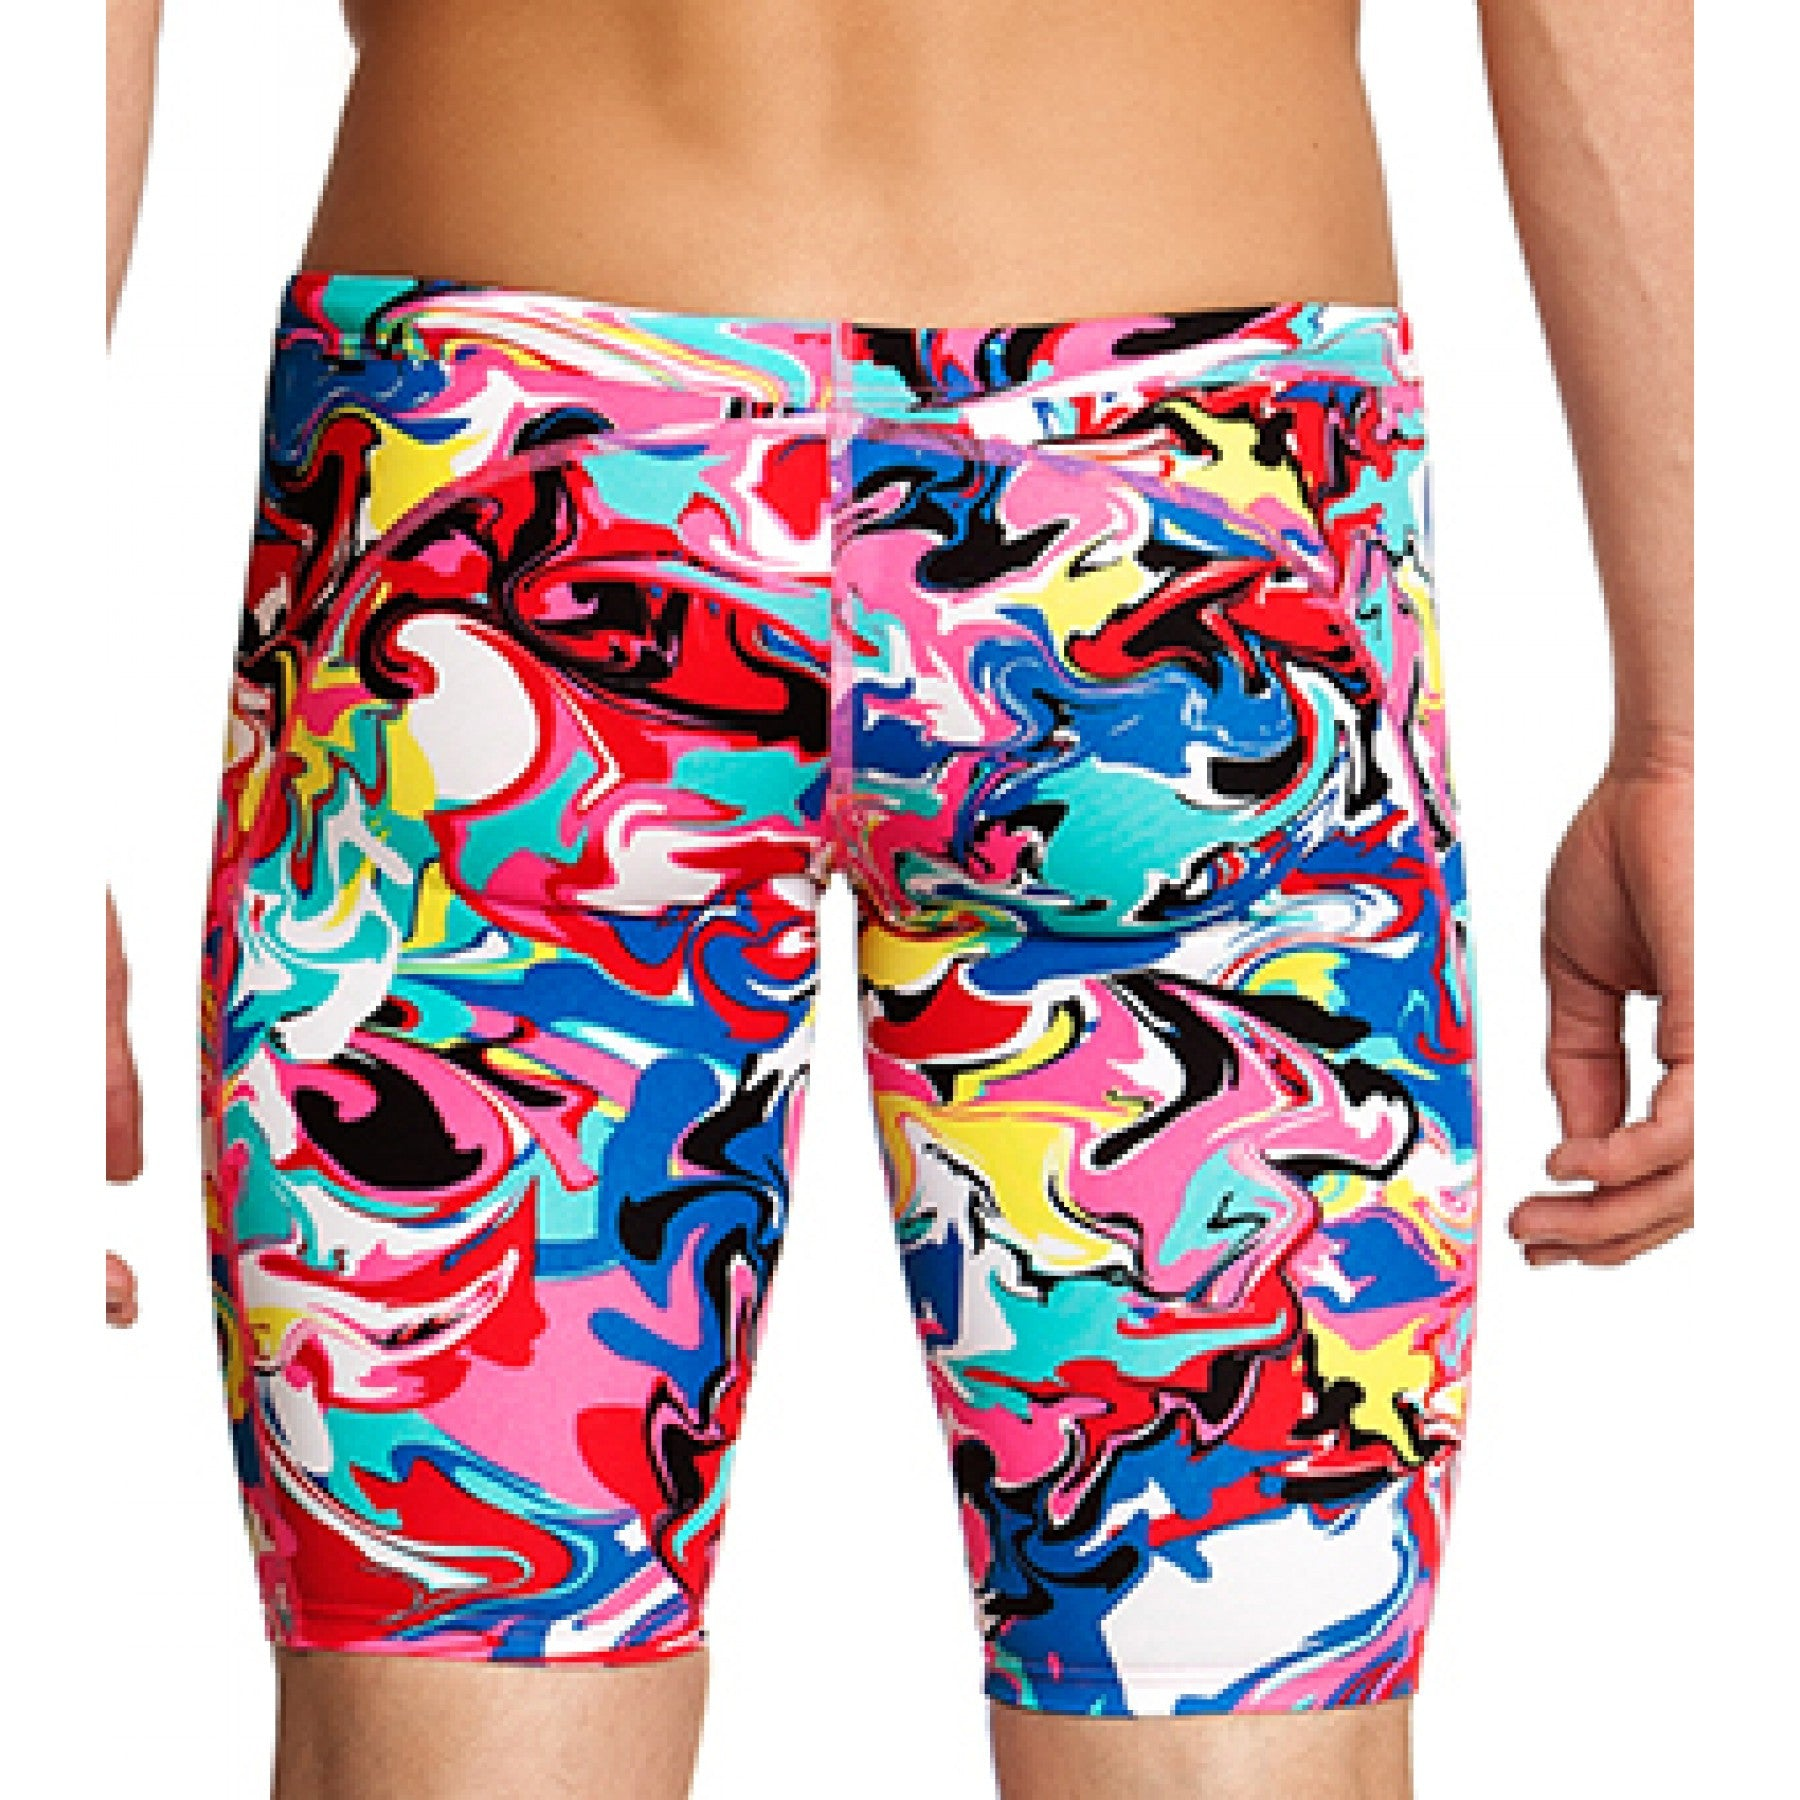 Funky Trunks Splatterfied Jammer